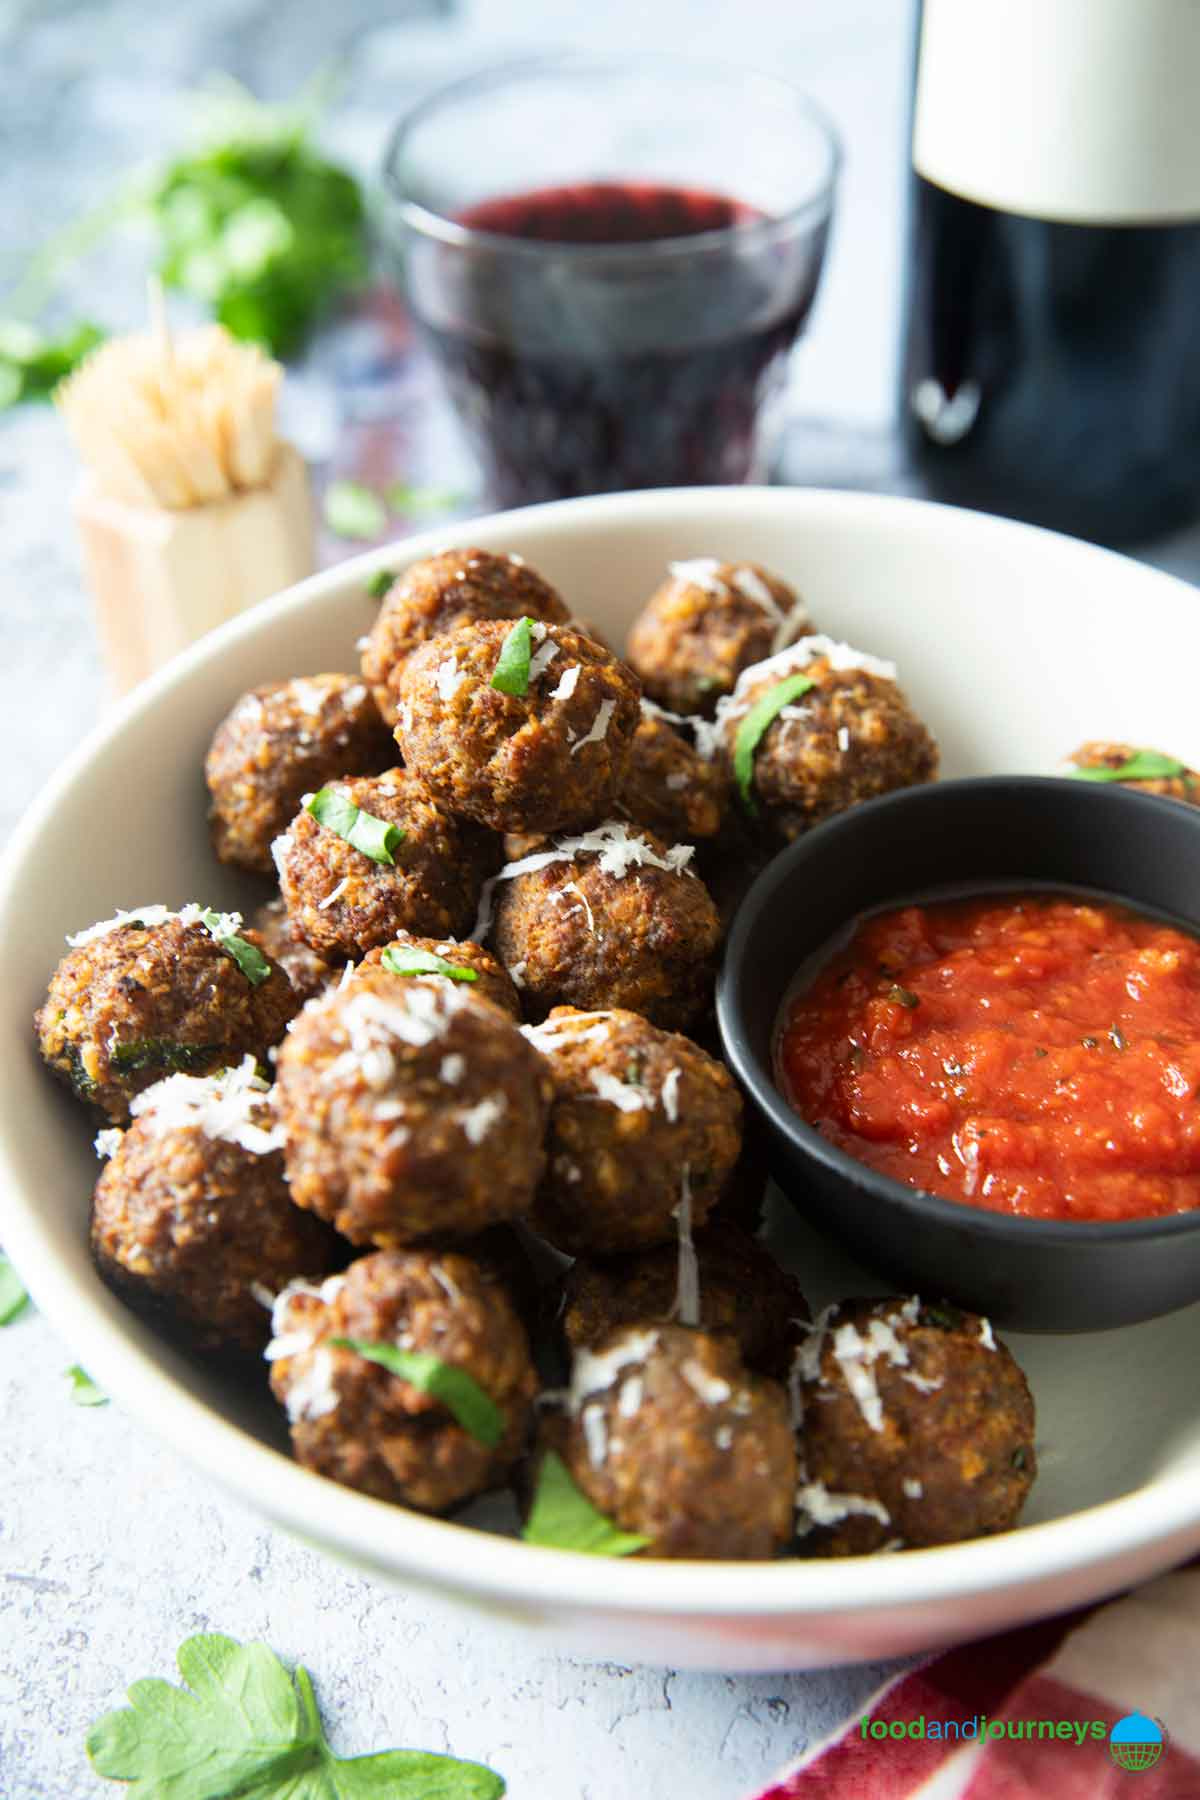 A closer shot of a plate of Italian meatballs, served with some marinara sauce, and a glass of wine.